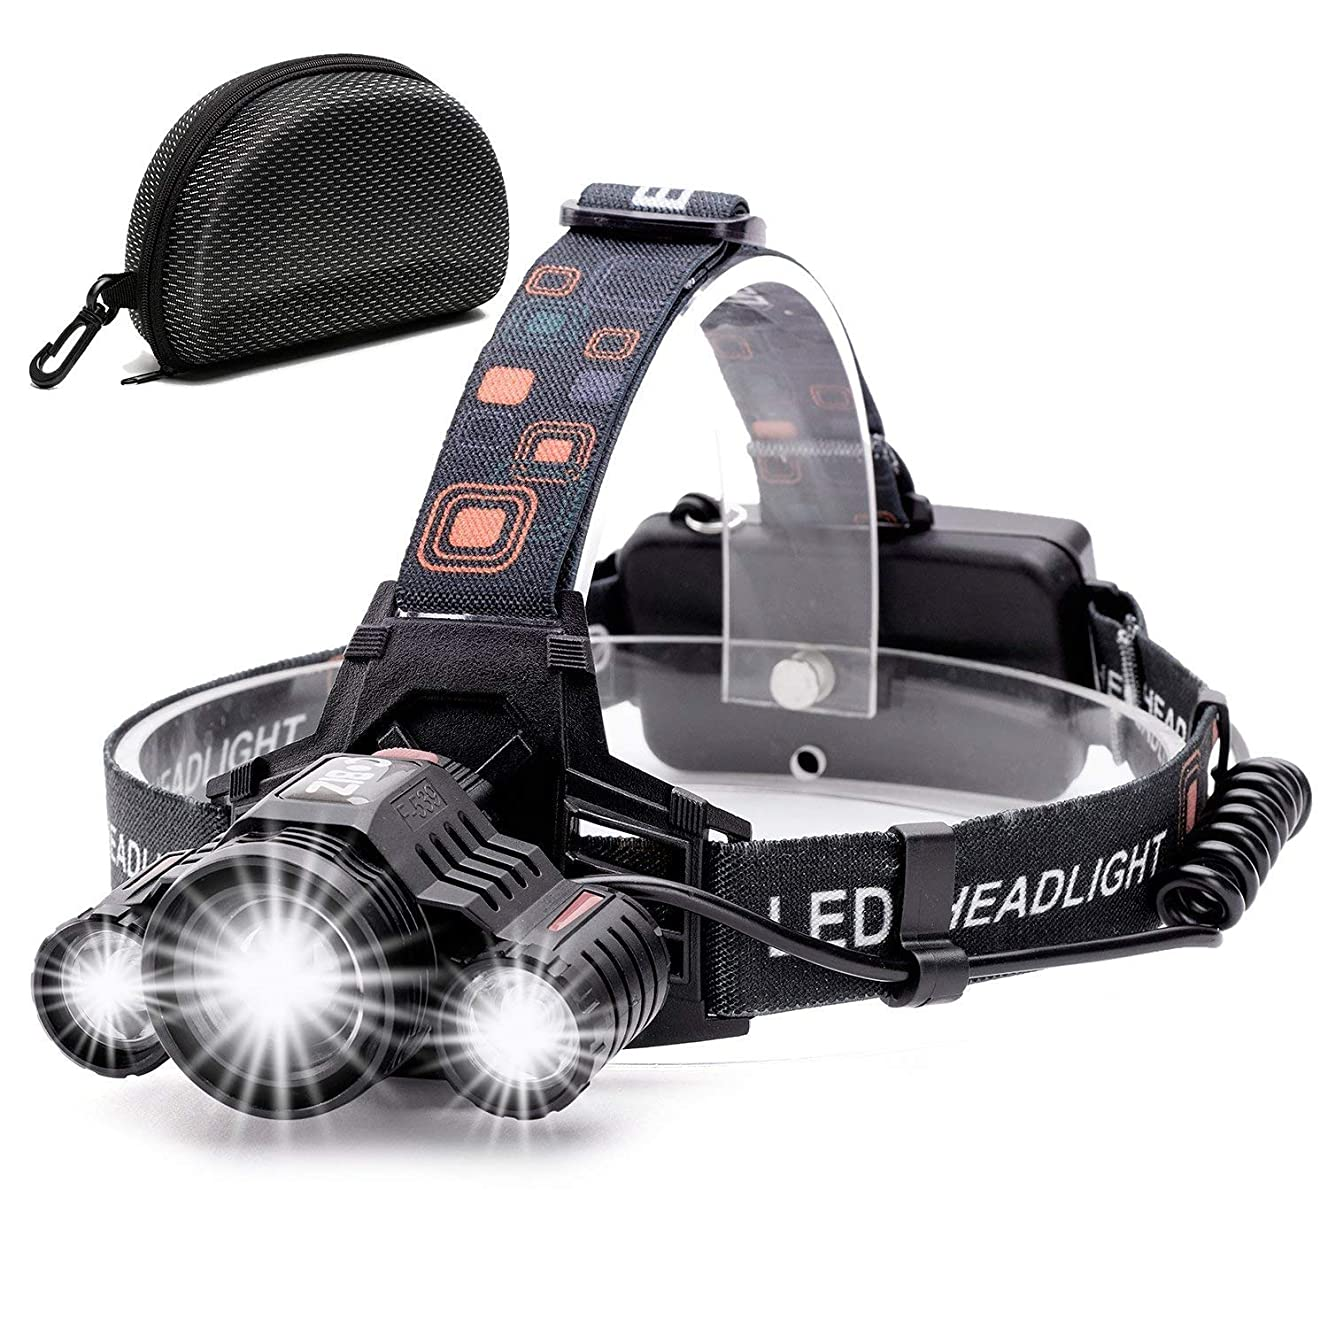 Headlamp,Cobiz Brightest High 6000 Lumen LED Work Headlight,18650 USB Rechargeable Waterproof Flashlight with Zoomable Work Light,Head Lights for Camping,Hiking, Outdoors